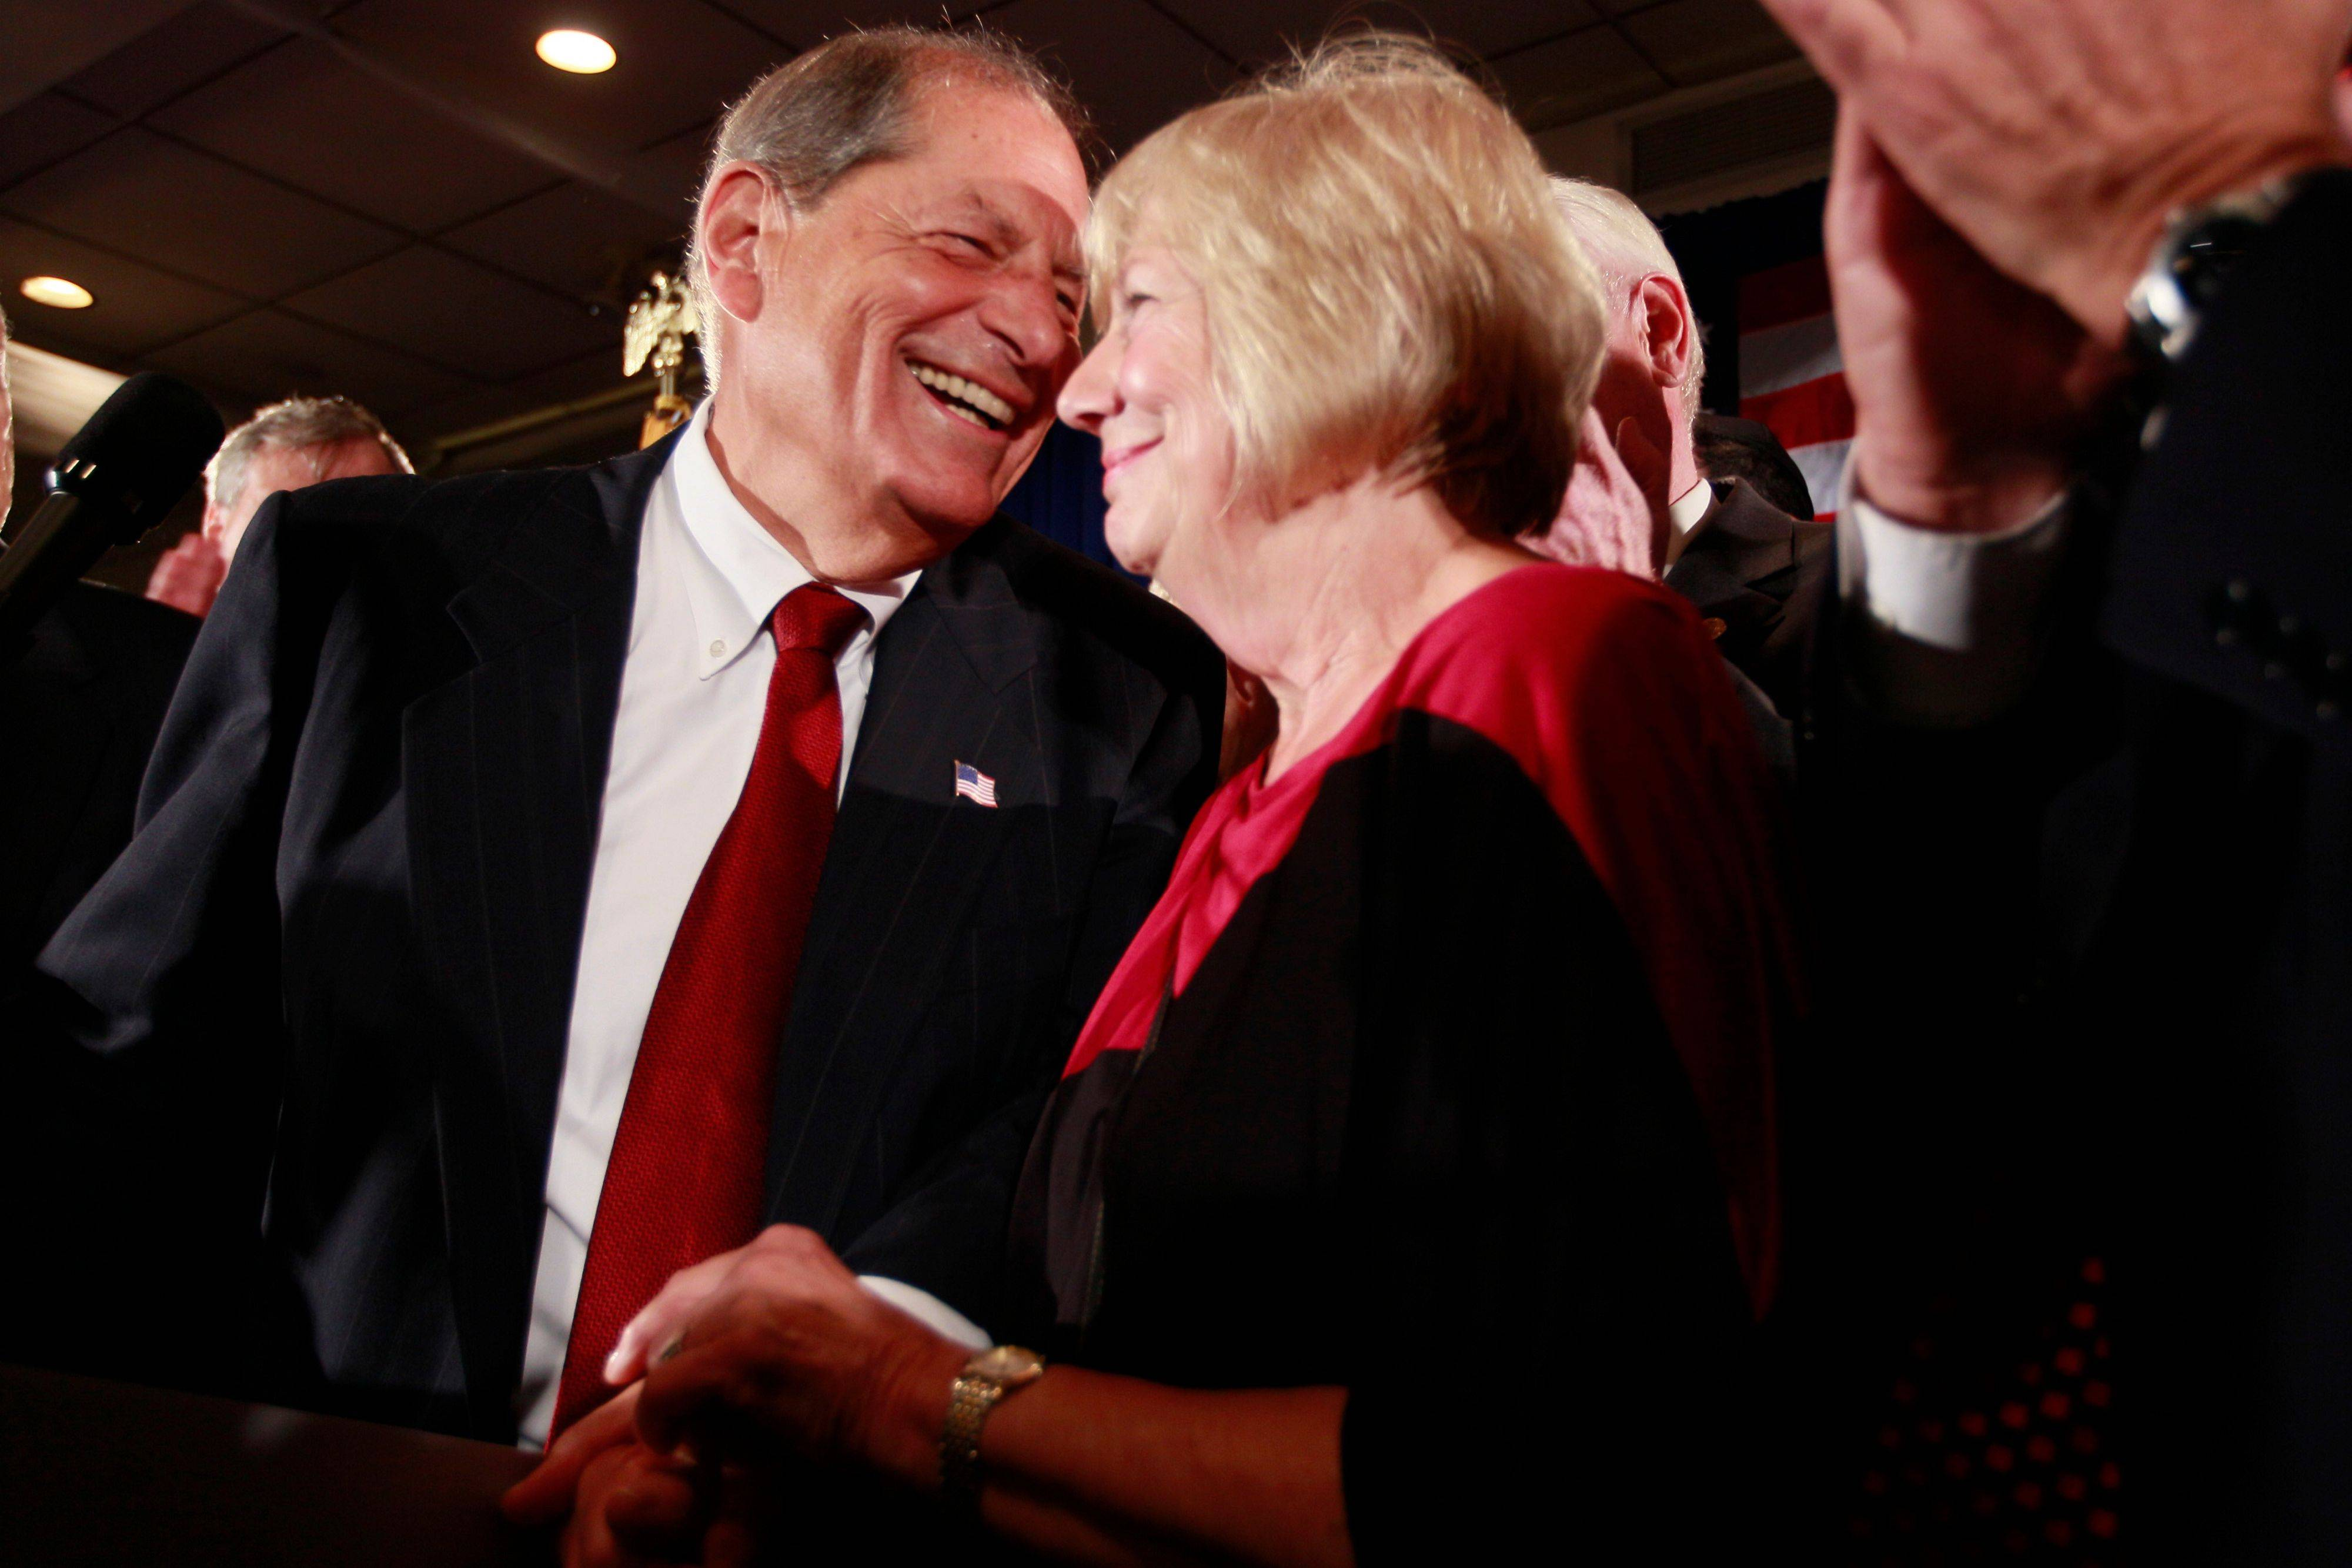 Republican Bob Turner smiles Tuesday as he leans in to kiss his wife, Peggy, while addressing the supporters during an election night party in New York. The retired media executive and political novice defeated Democratic state Assemblyman David Weprin.